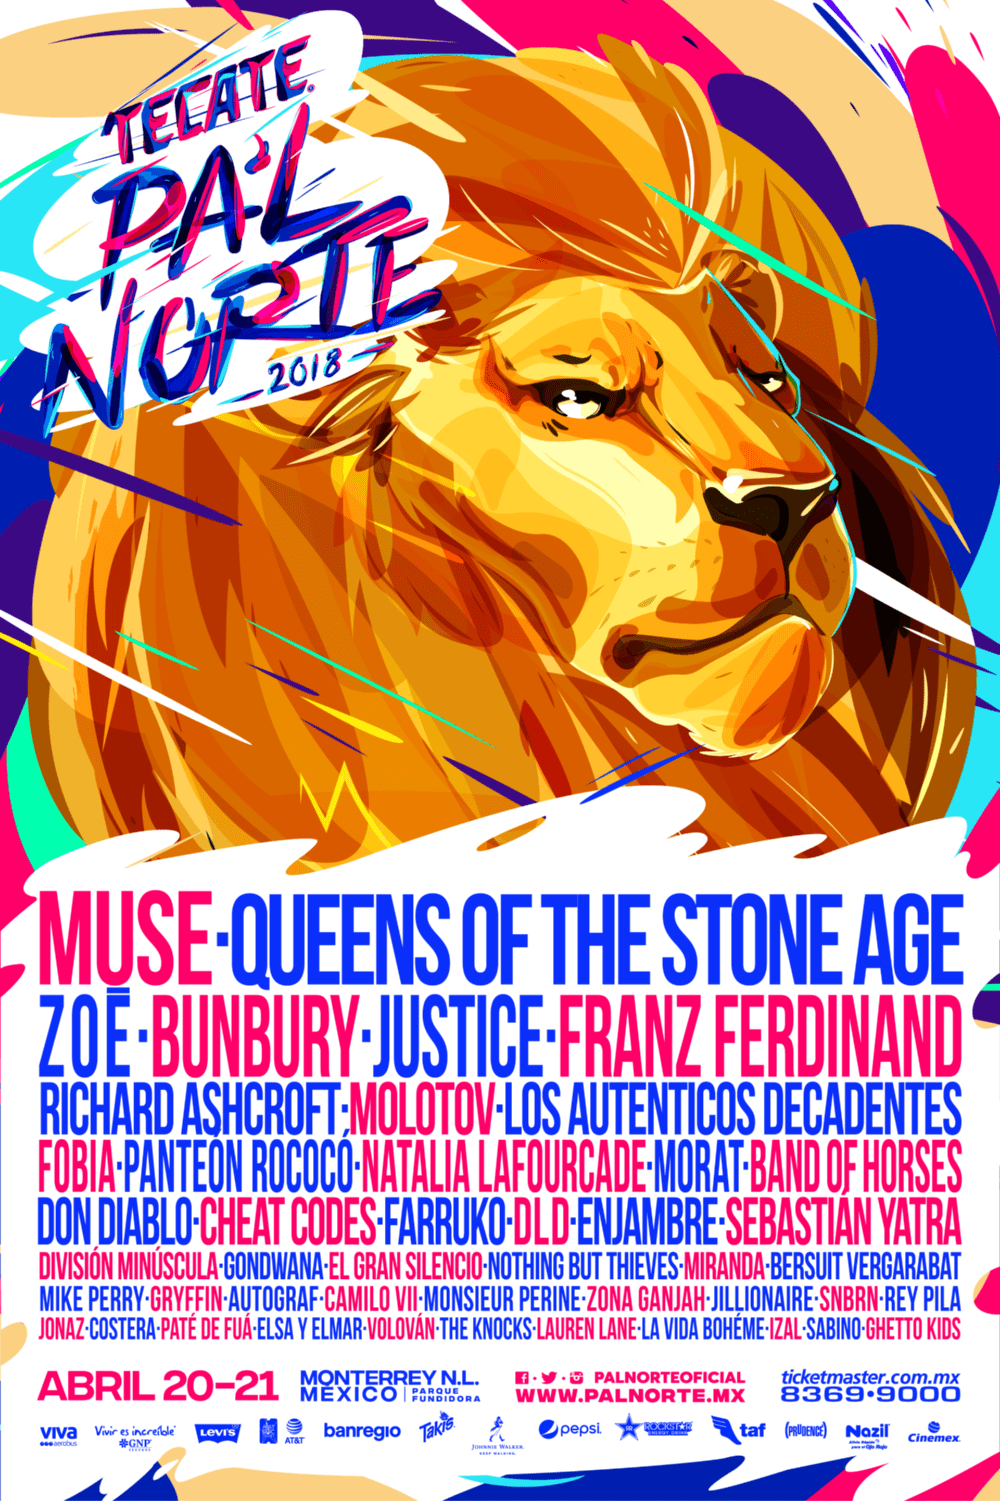 poster_oficial_pal_norte_2018.png_2024228193.png